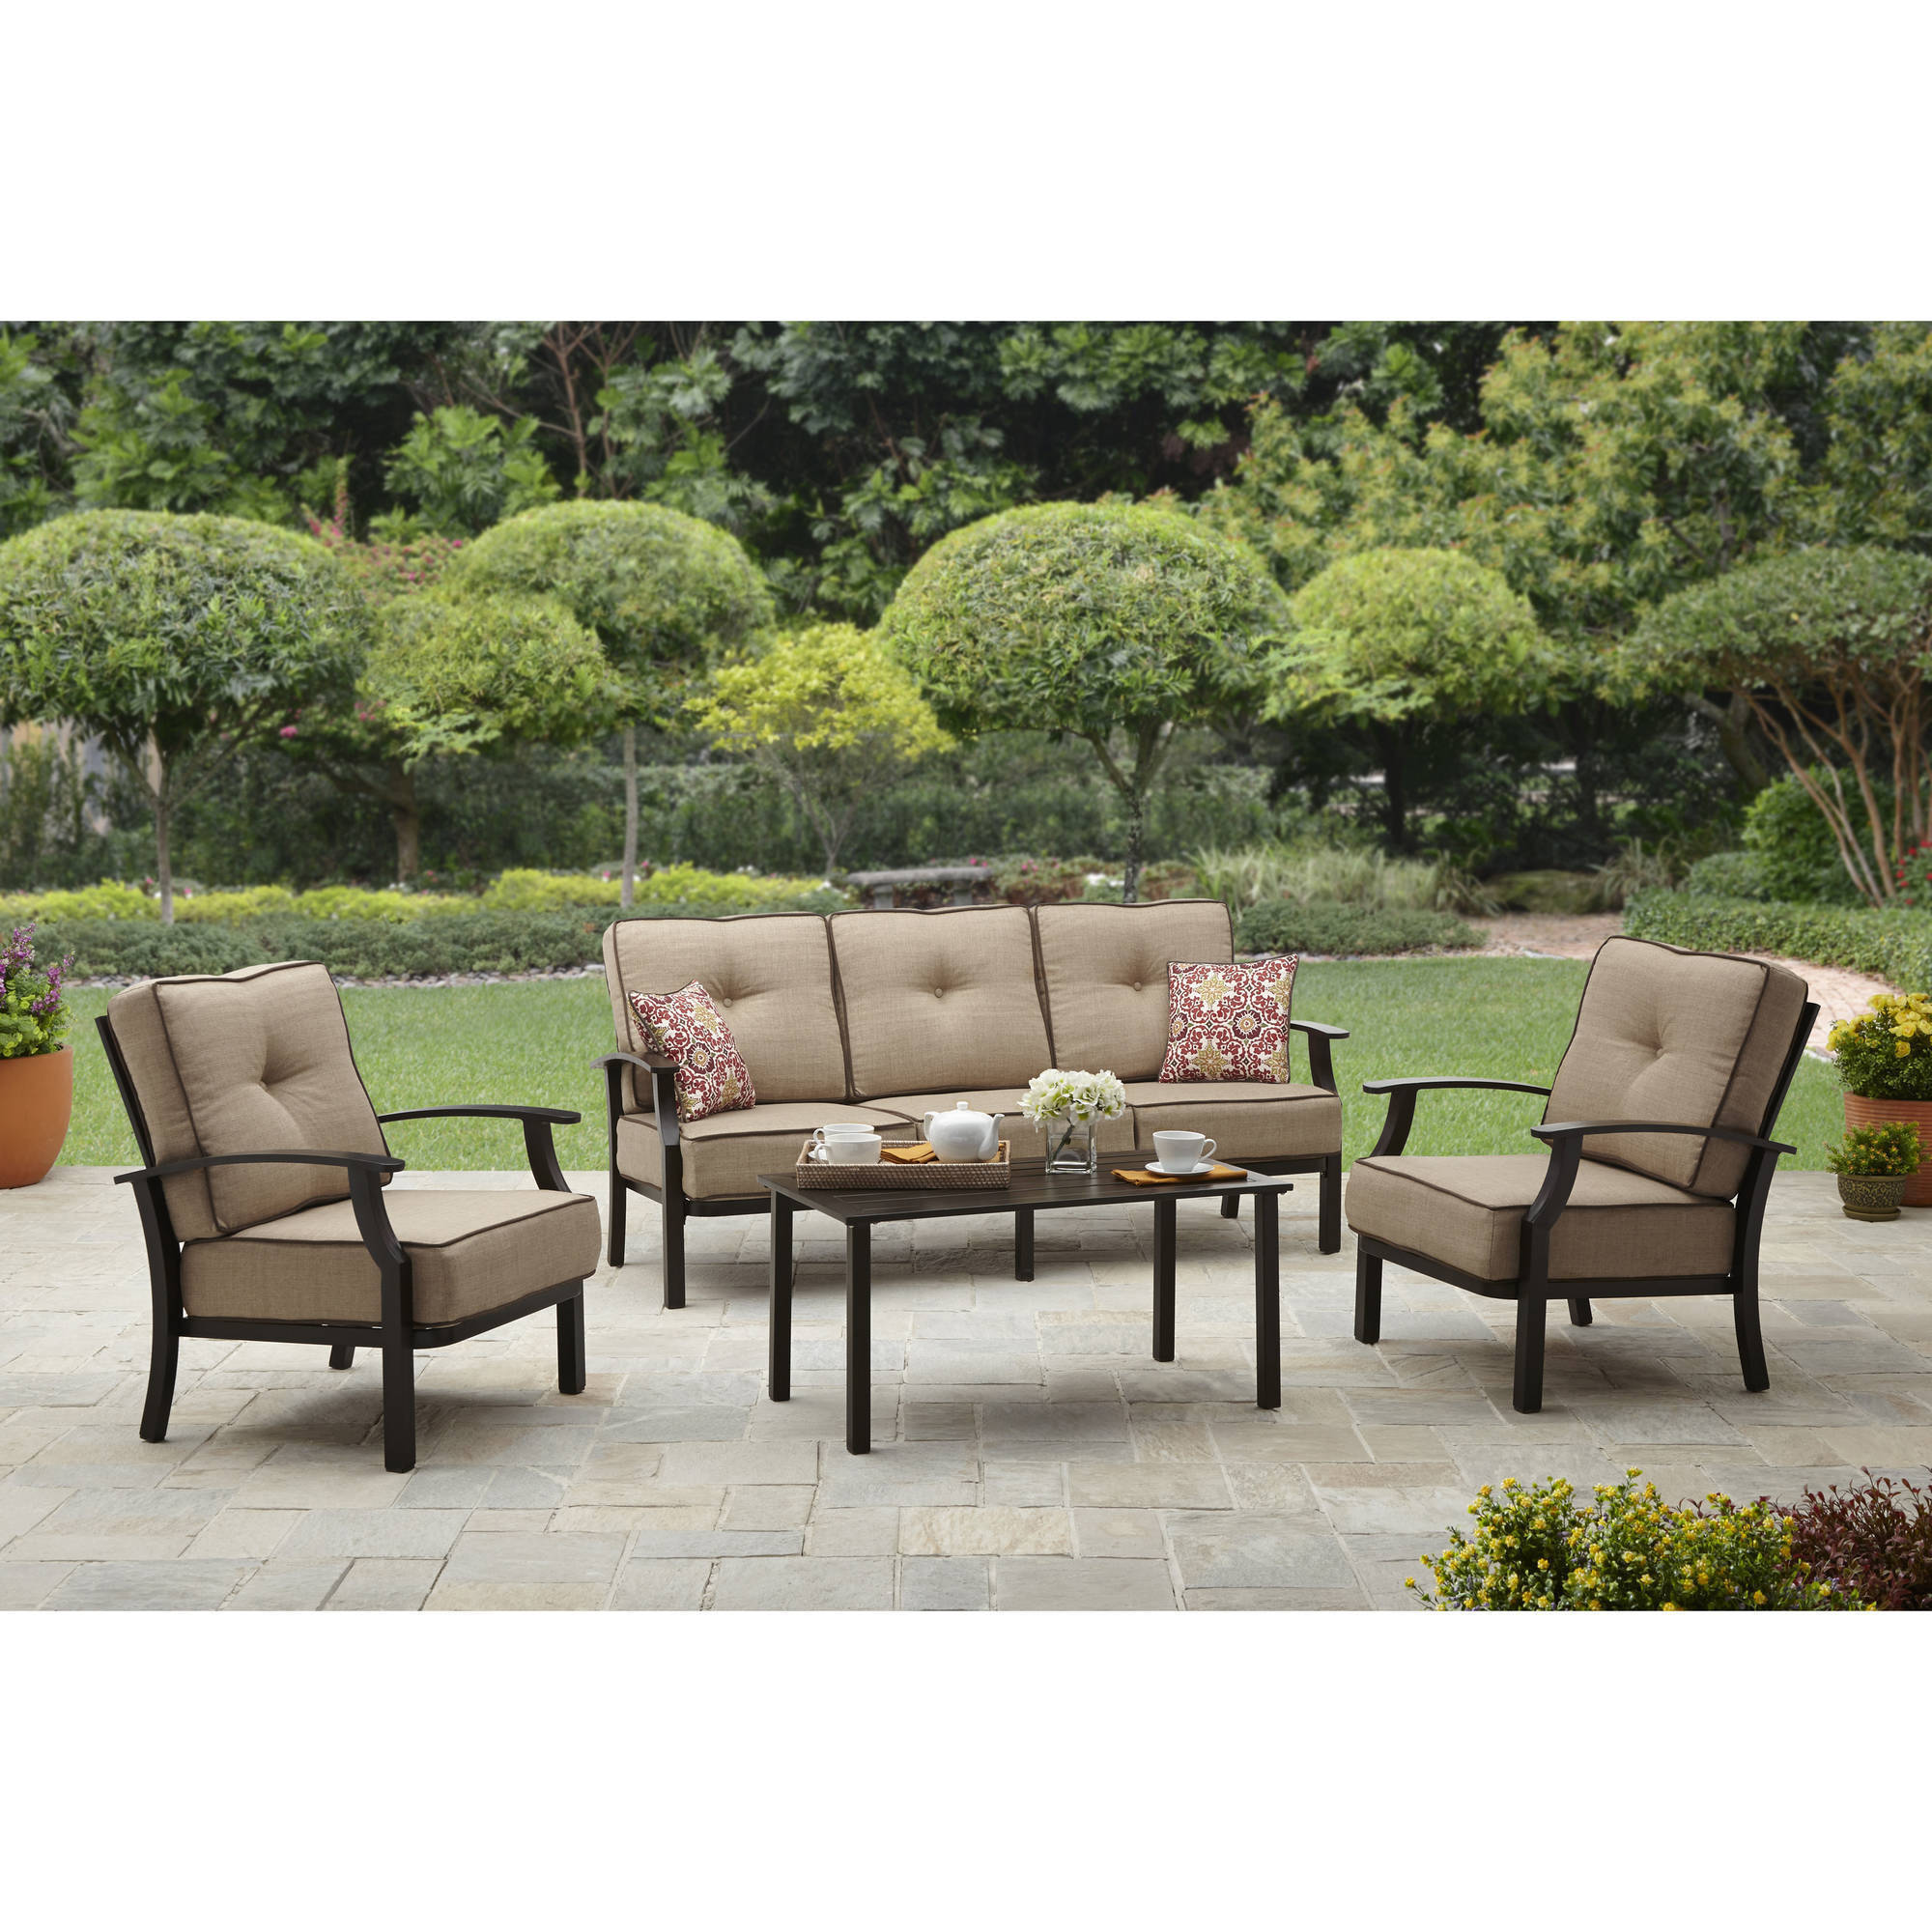 Outdoor Furniture Garden And Patio Accessories